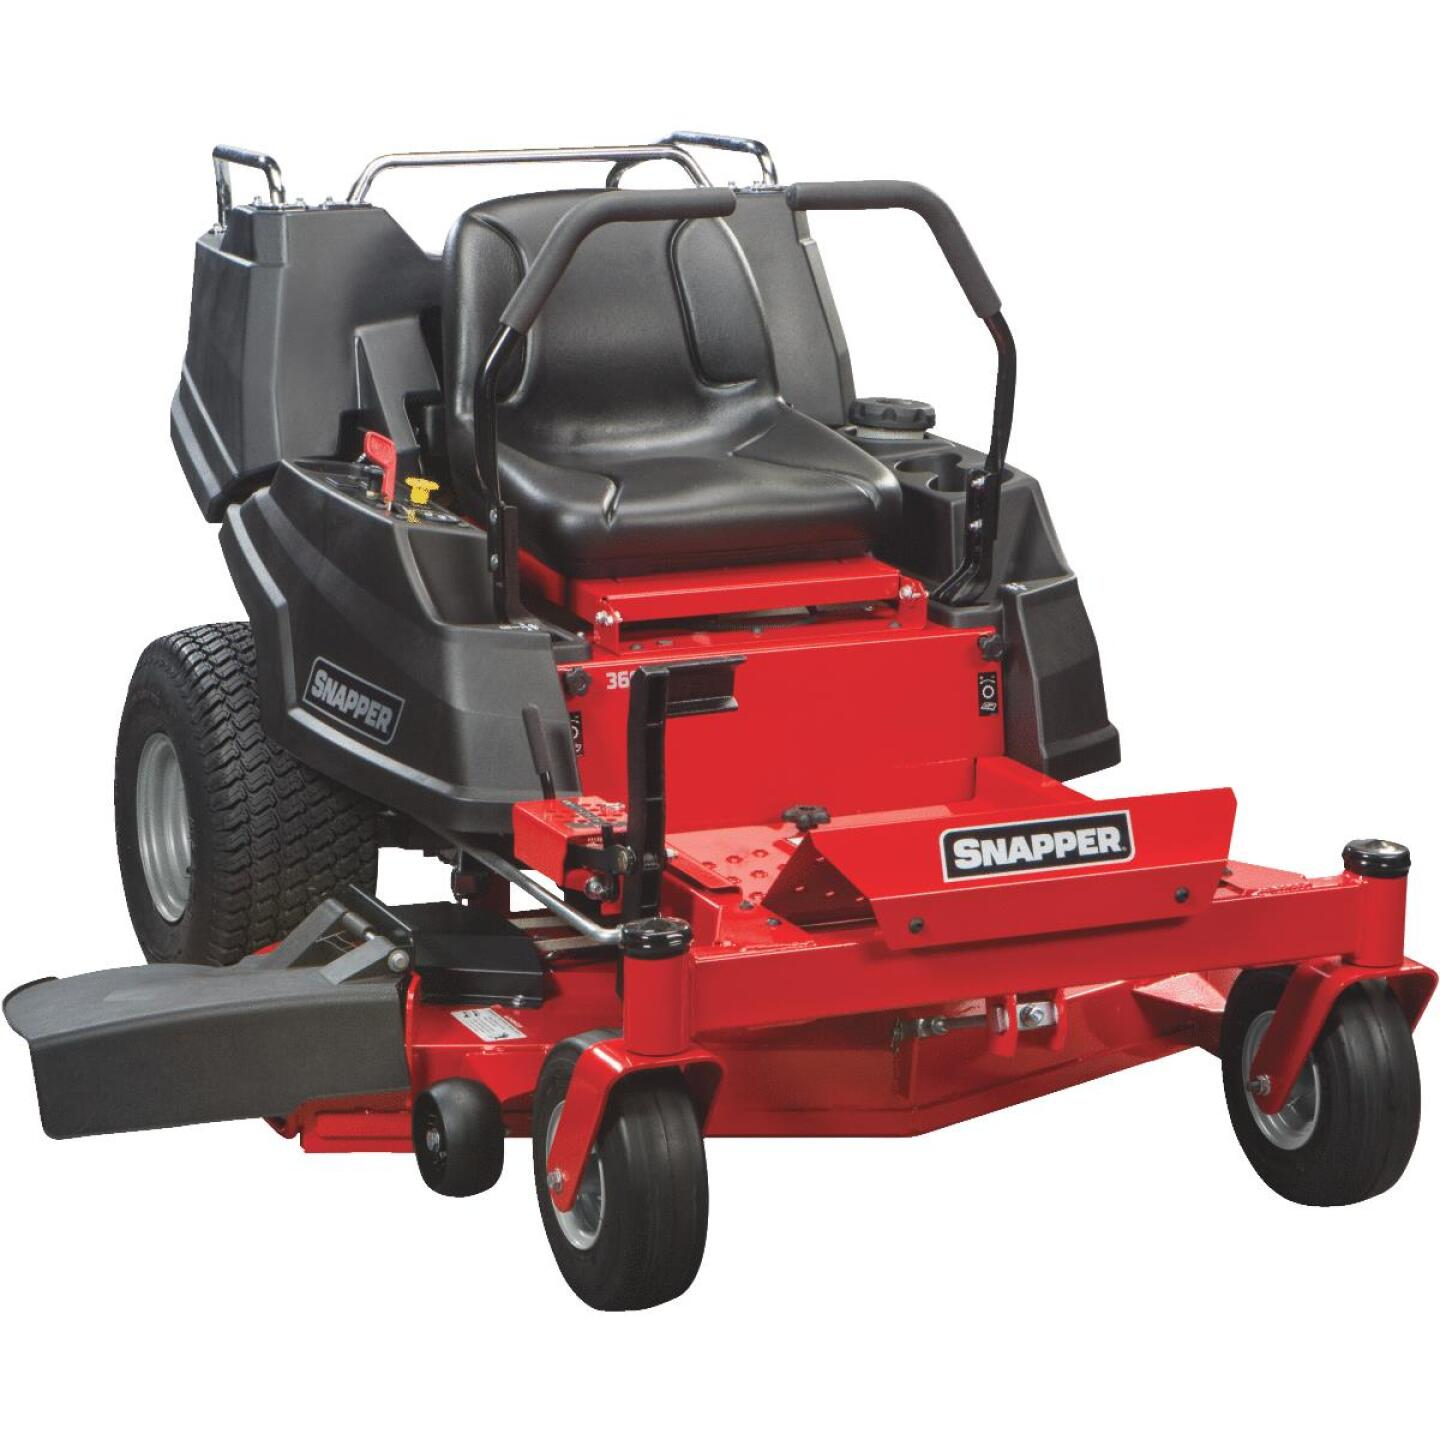 Snapper 48 In. 23 HP Briggs and Stratton Zero Turn Lawn Tractor Image 1